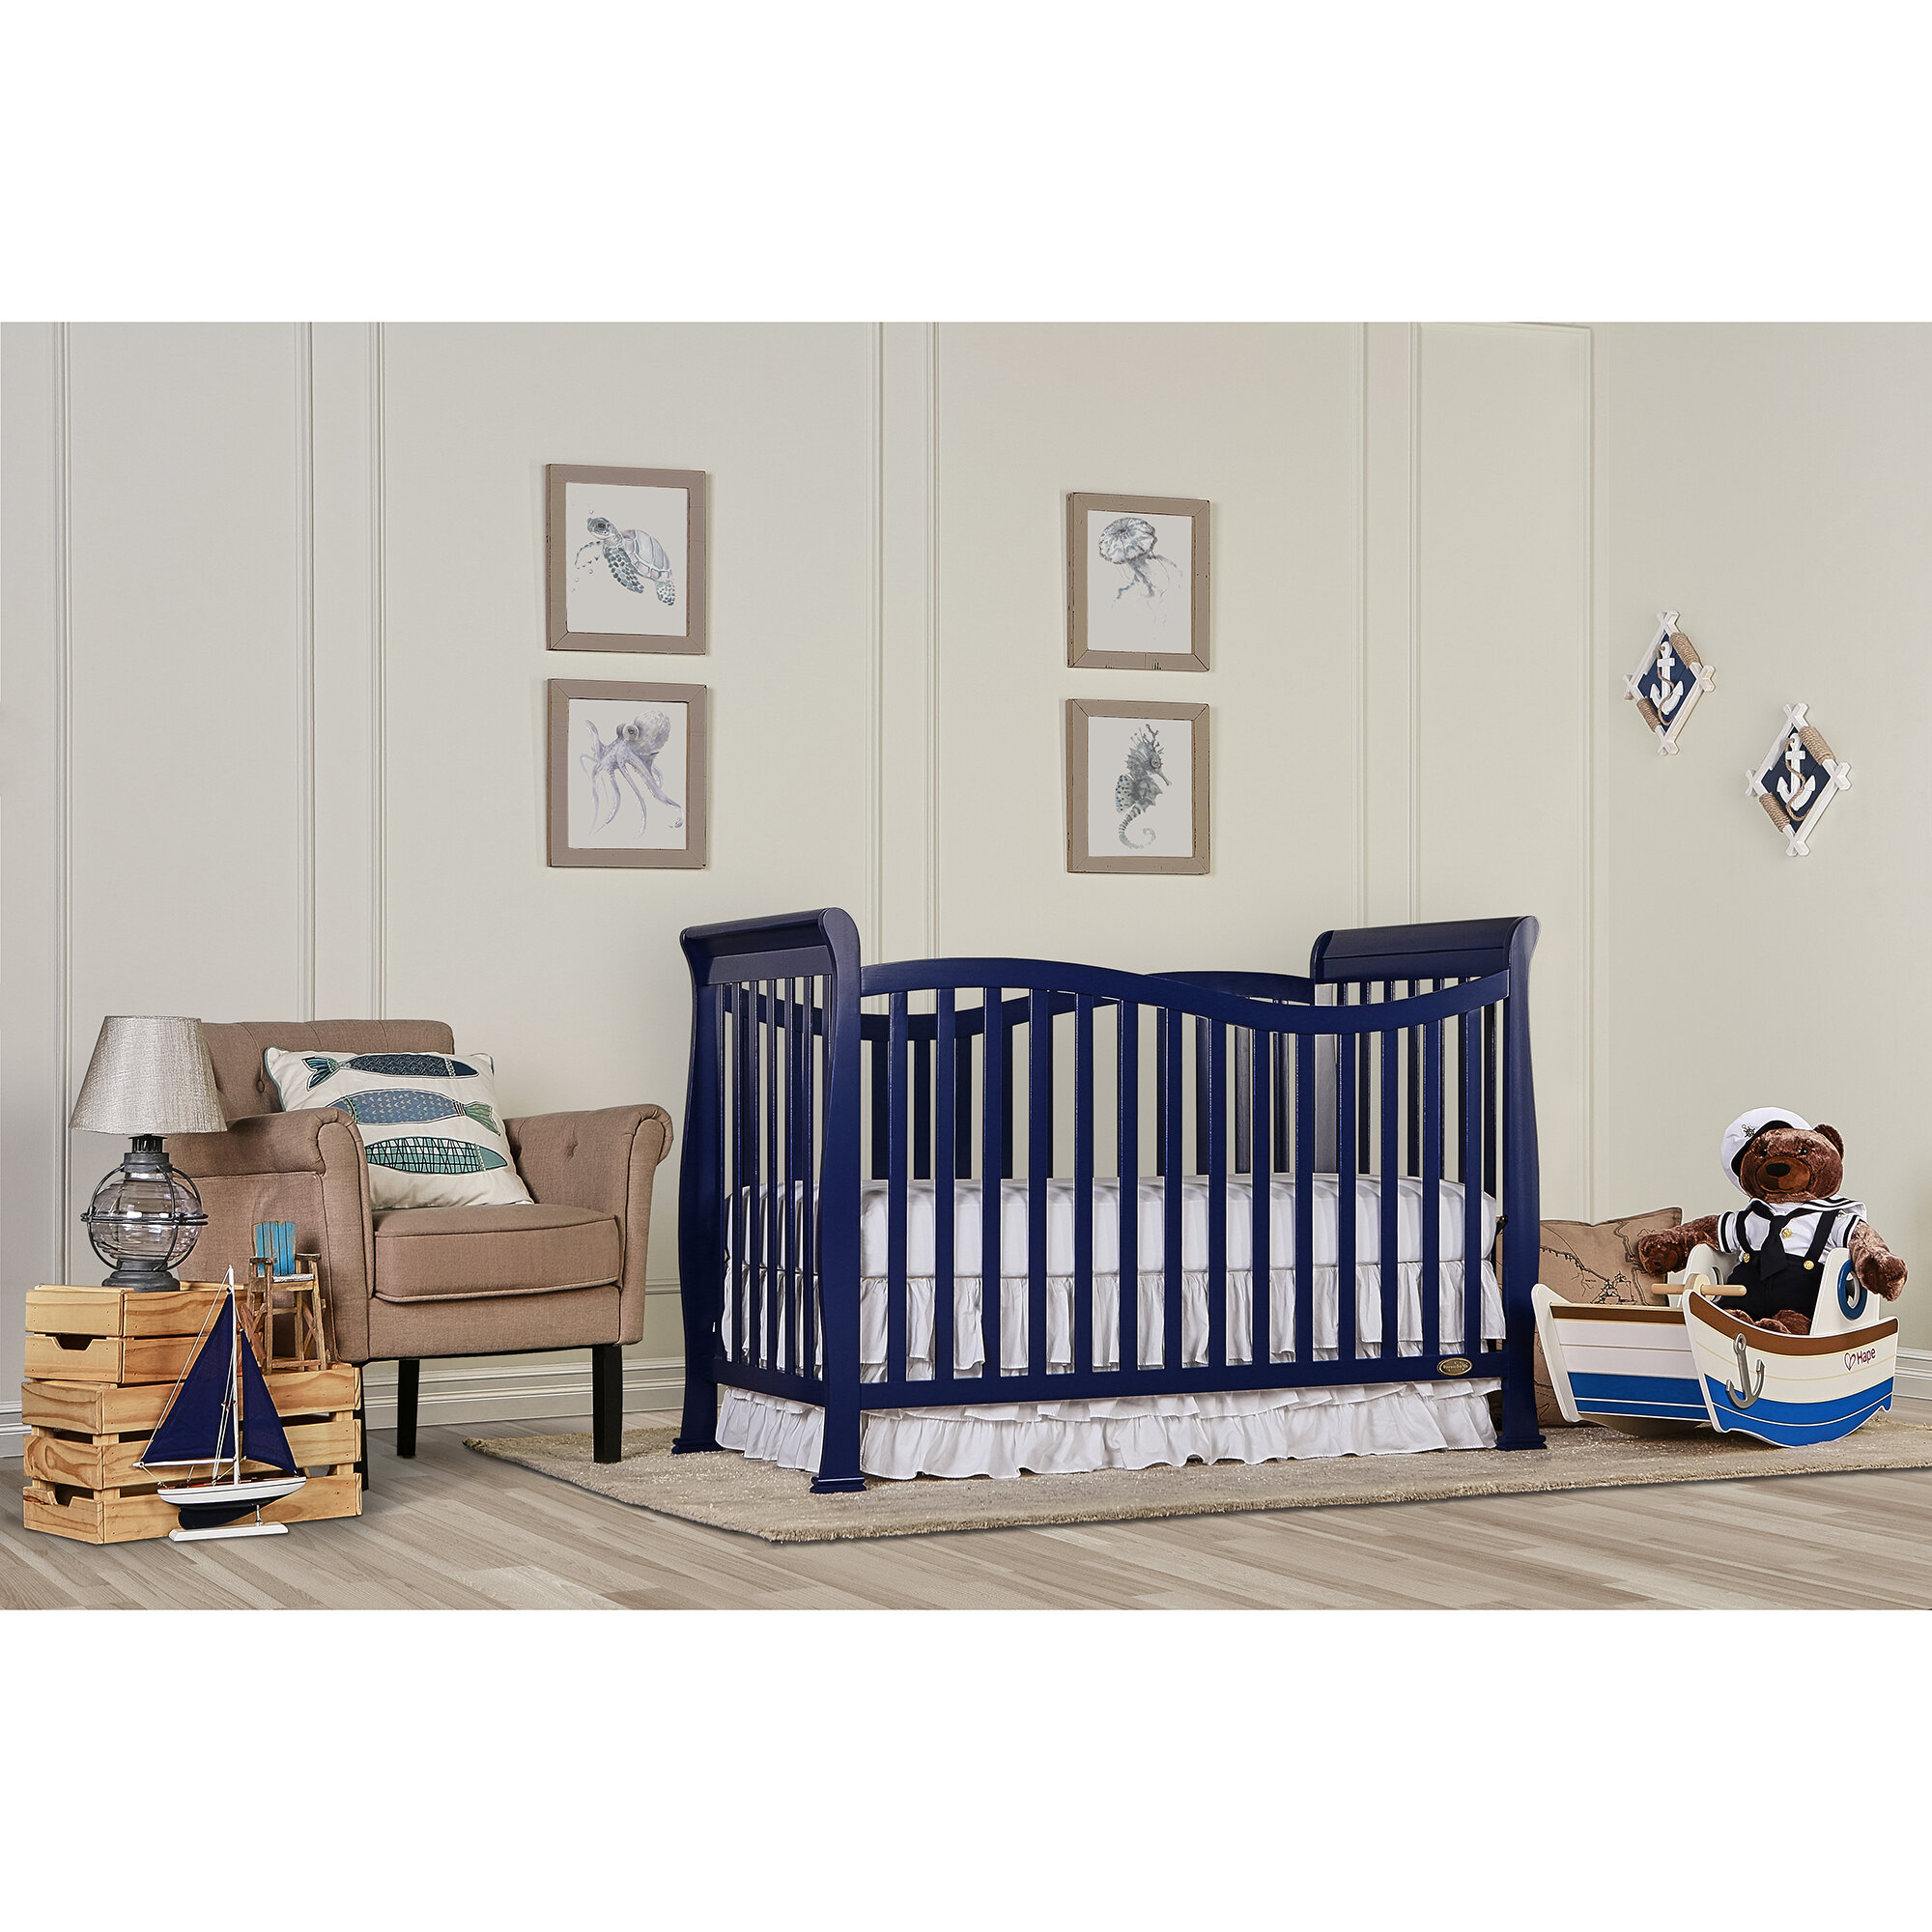 cribs lodge in baby interior crib dream one instructions info s tomfoolerys cribb convertible